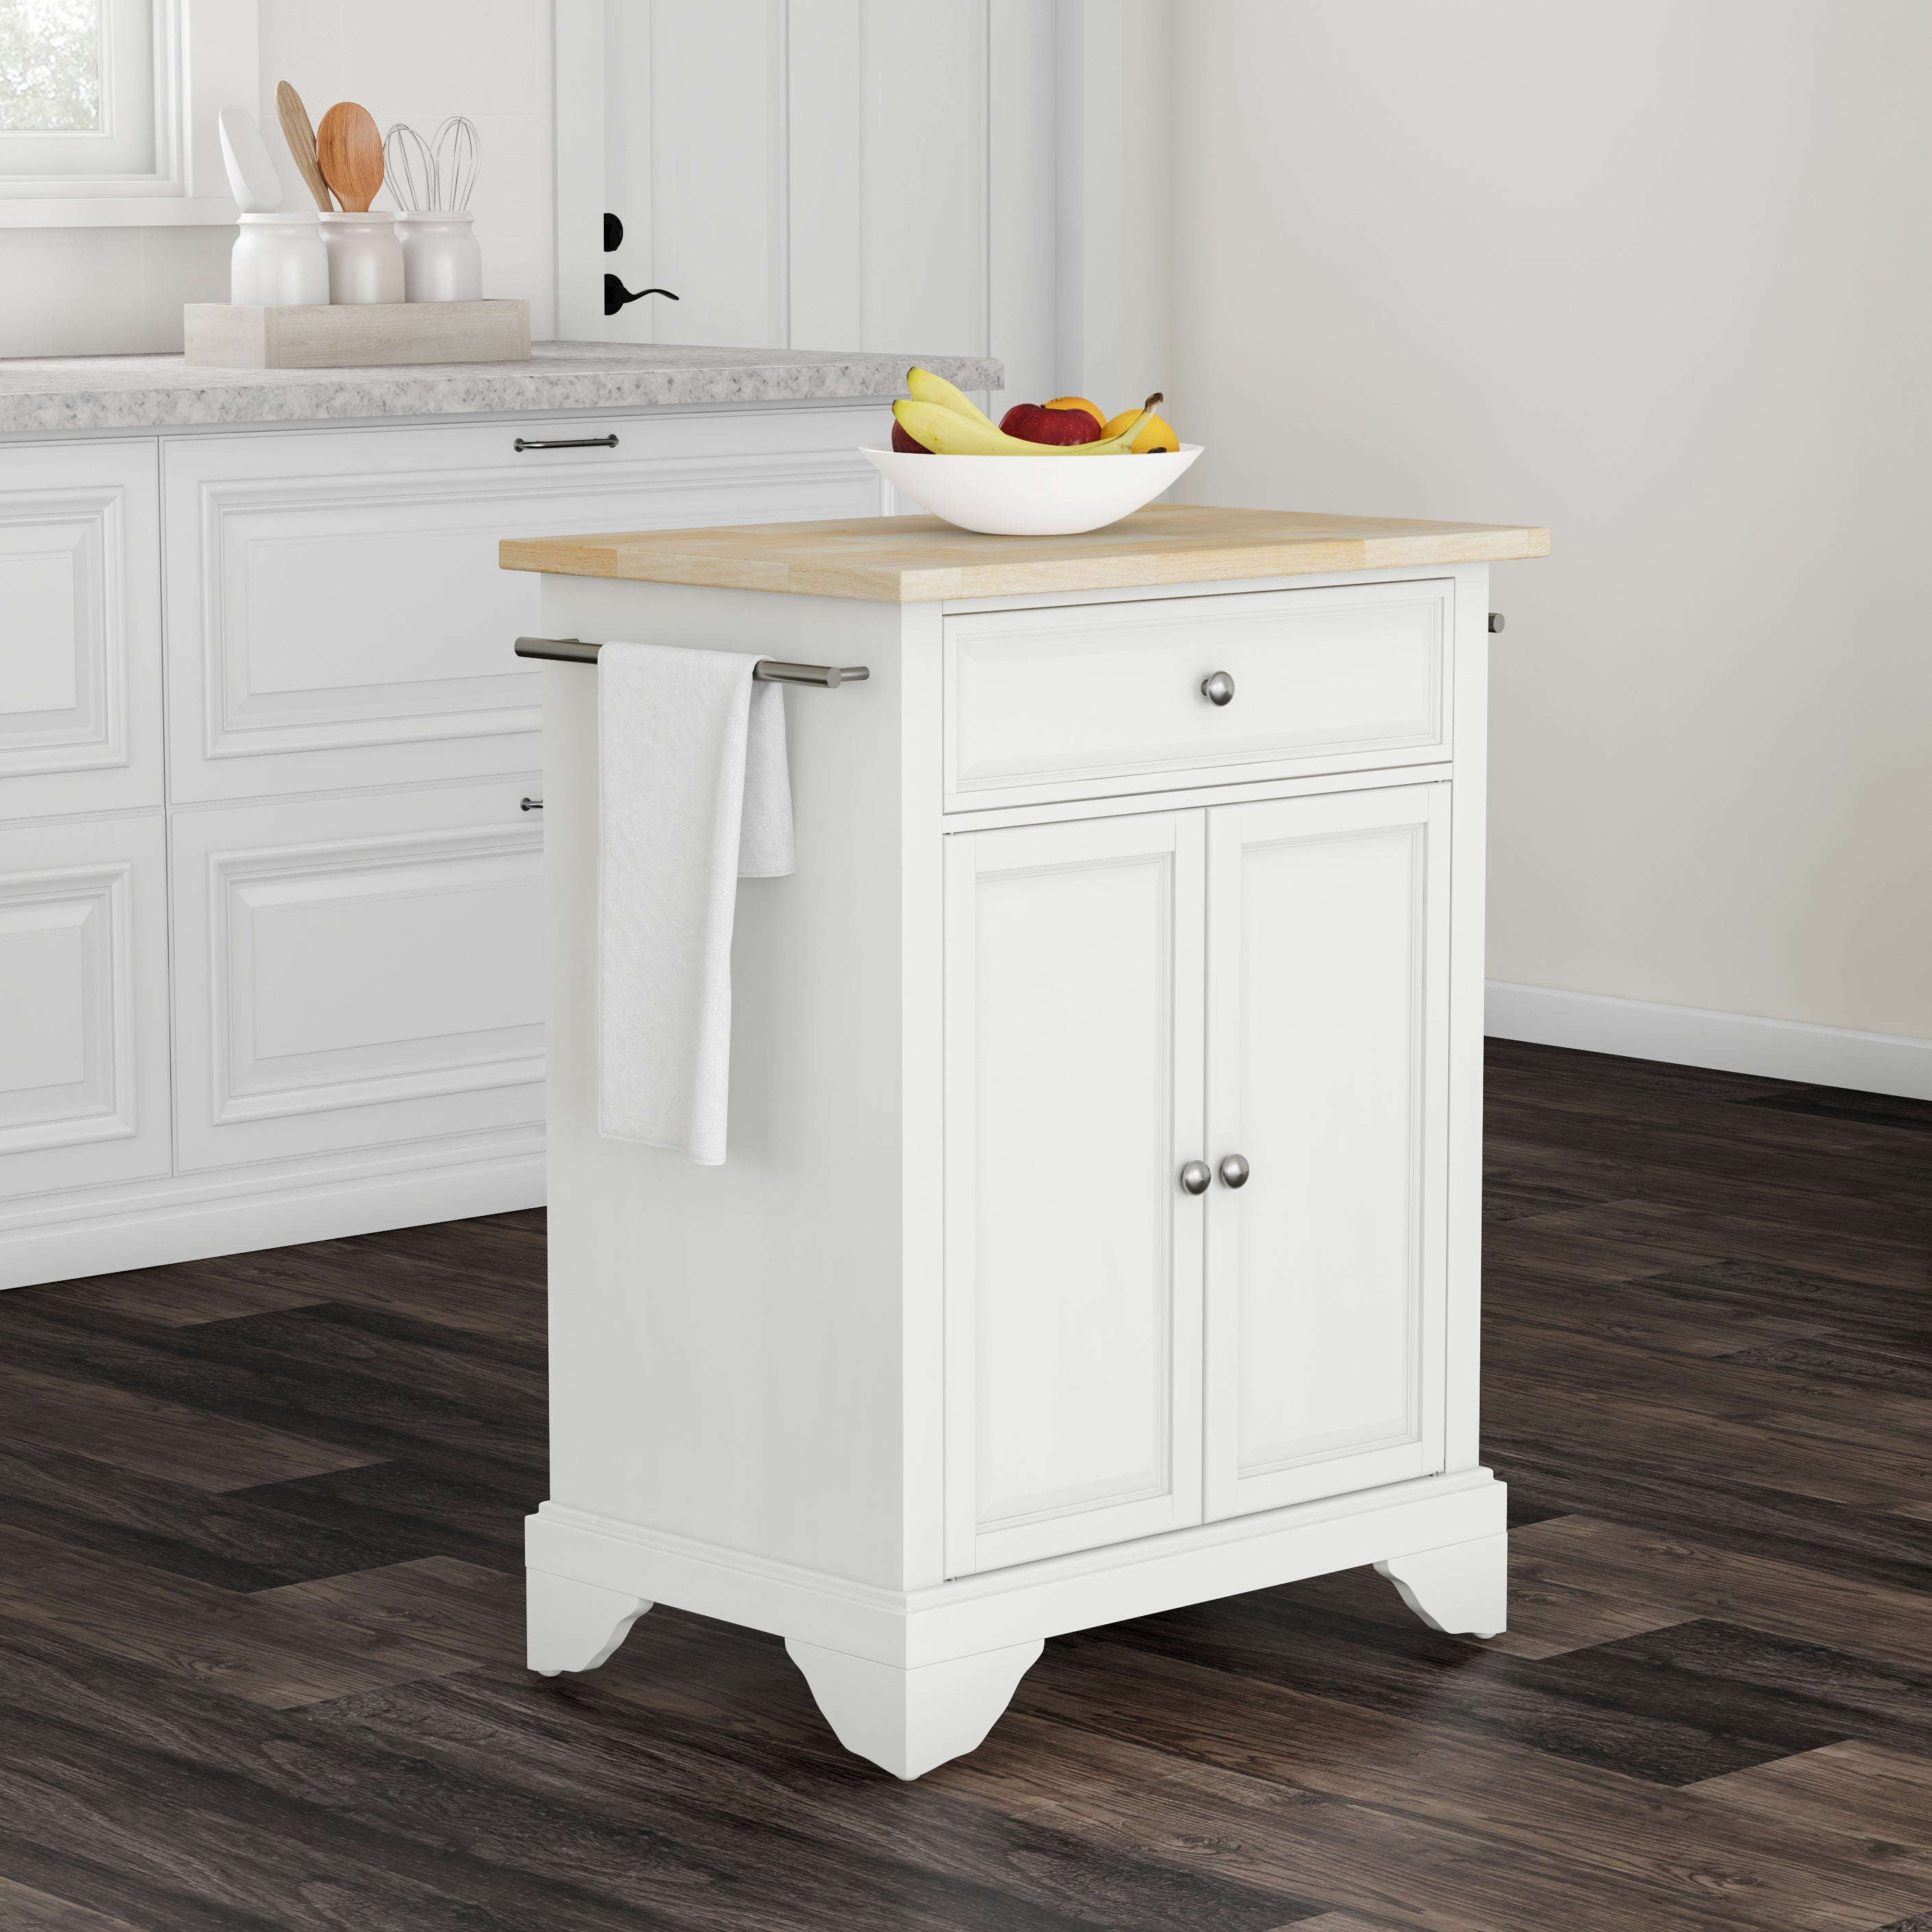 Shop copper grove slade natural wood top portable kitchen island in white finish free shipping today overstock com 20931615